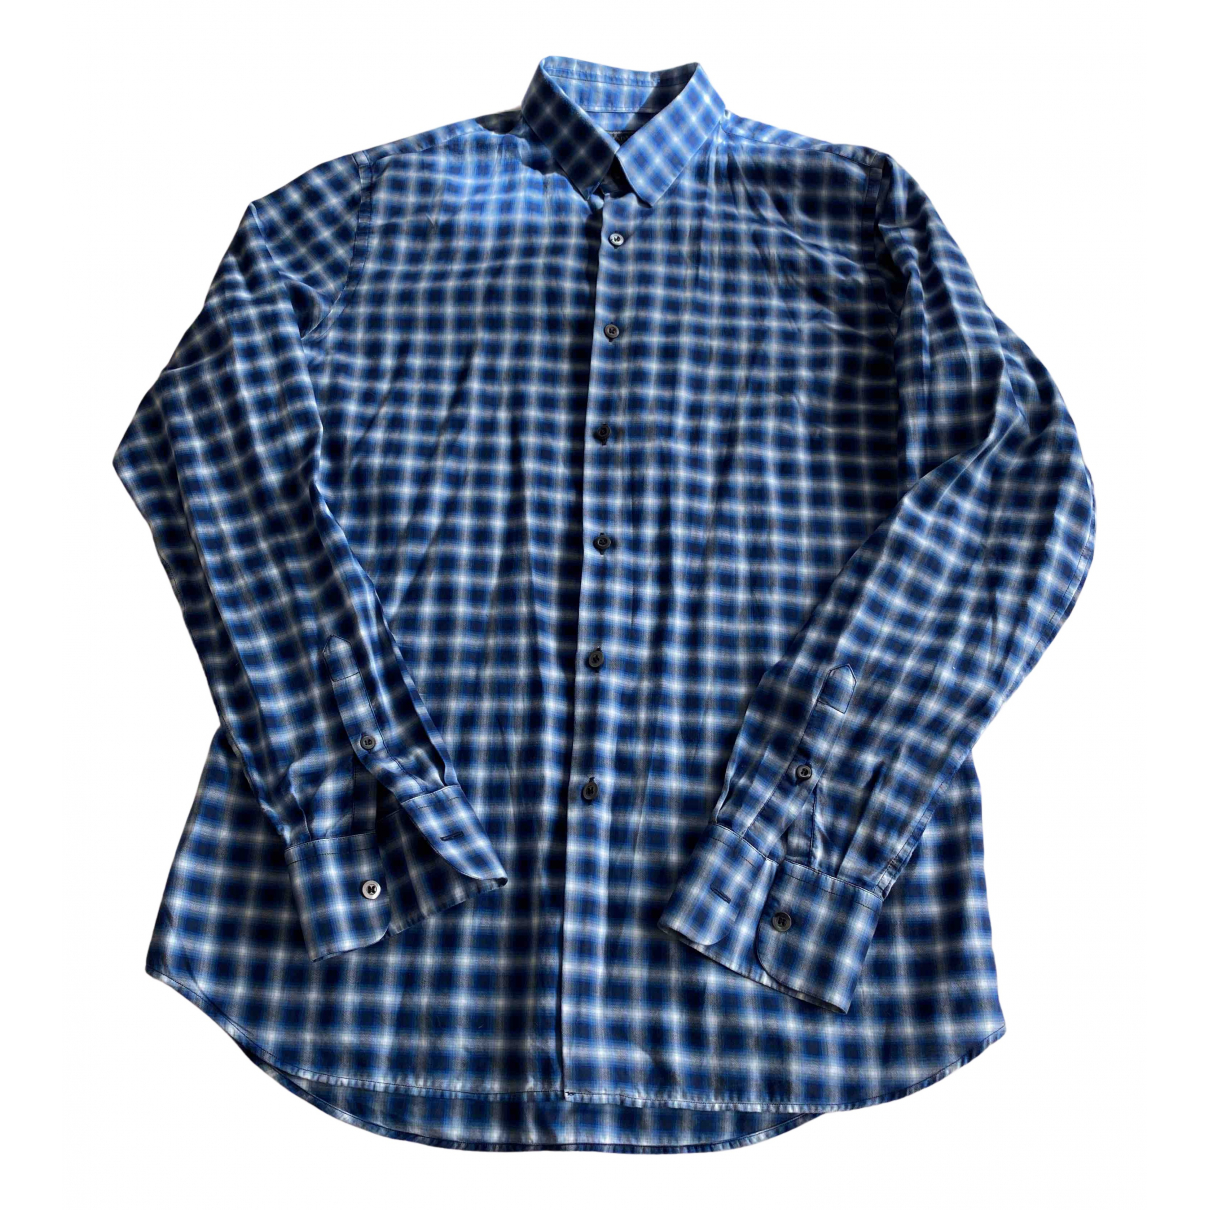 Prada N Blue Cotton Shirts for Men 42 EU (tour de cou / collar)